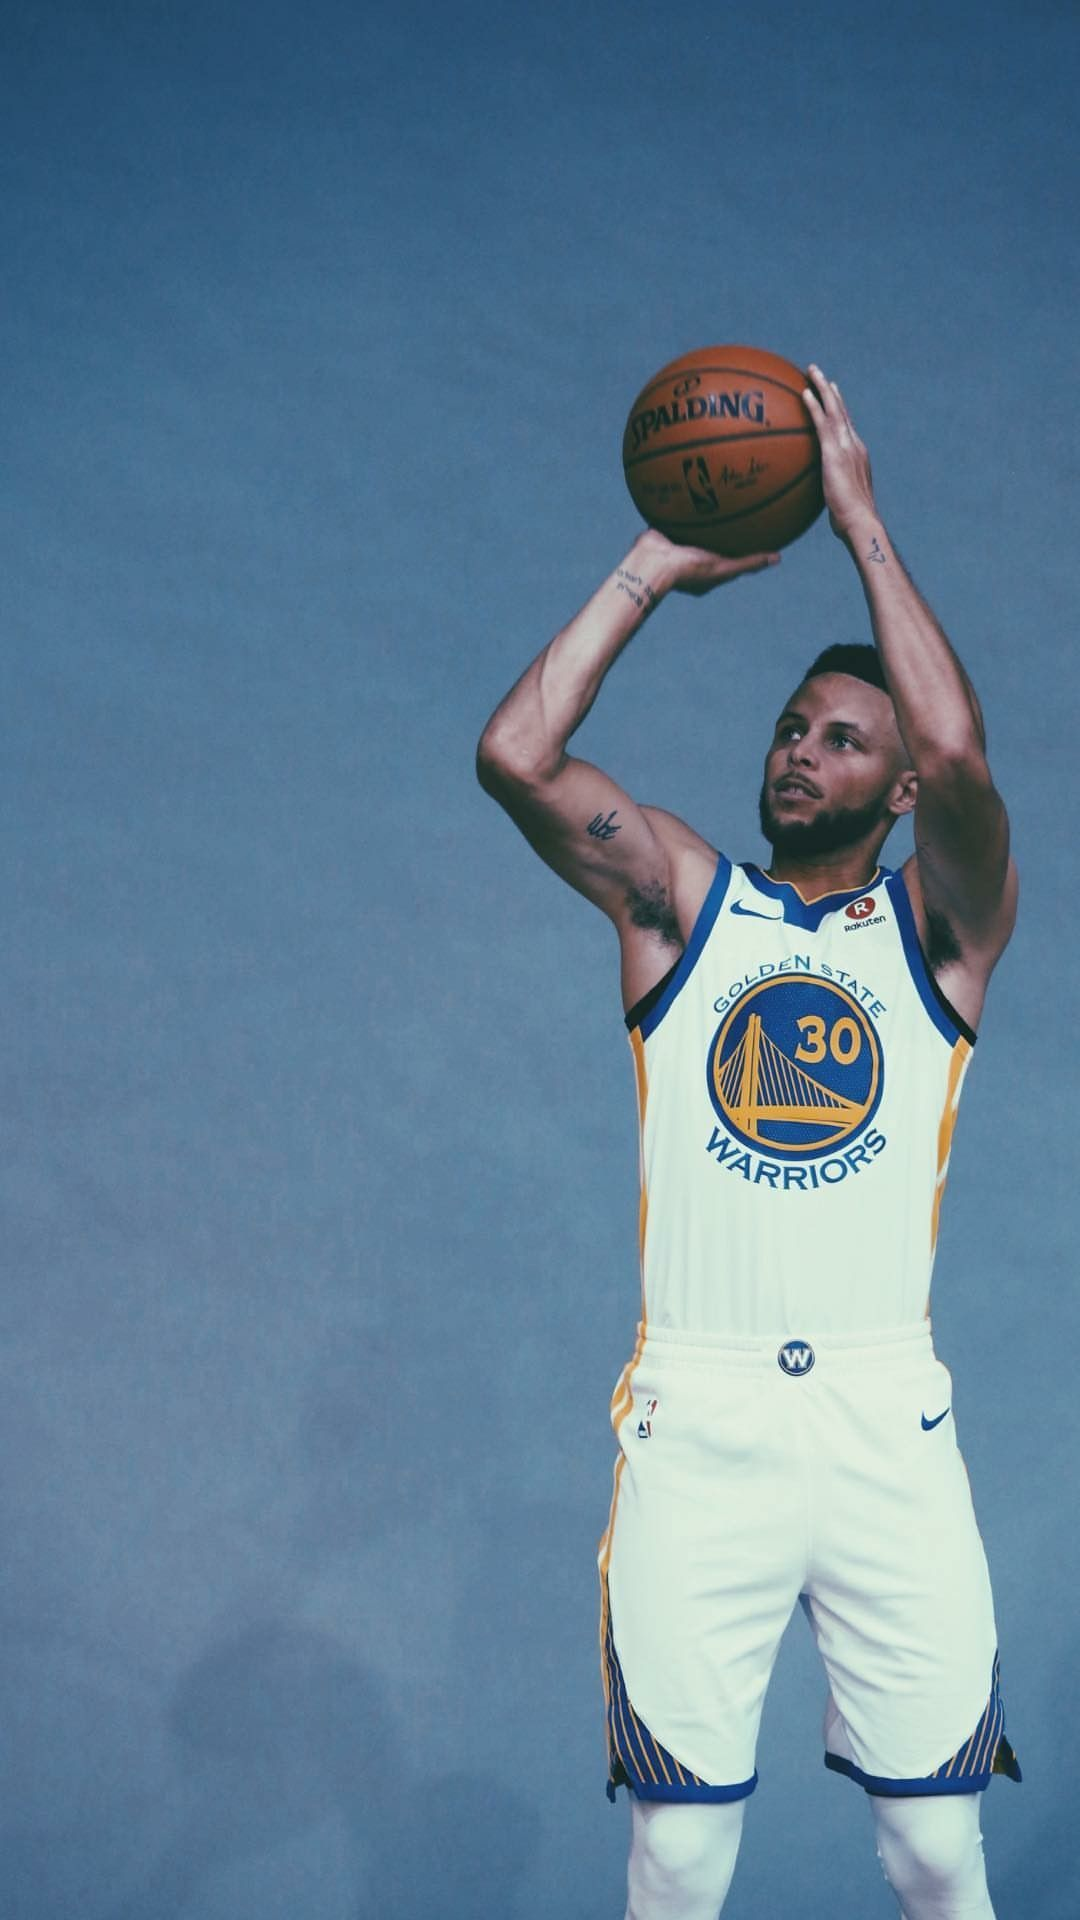 Steph Curry Wallpapers Top Free Steph Curry Backgrounds